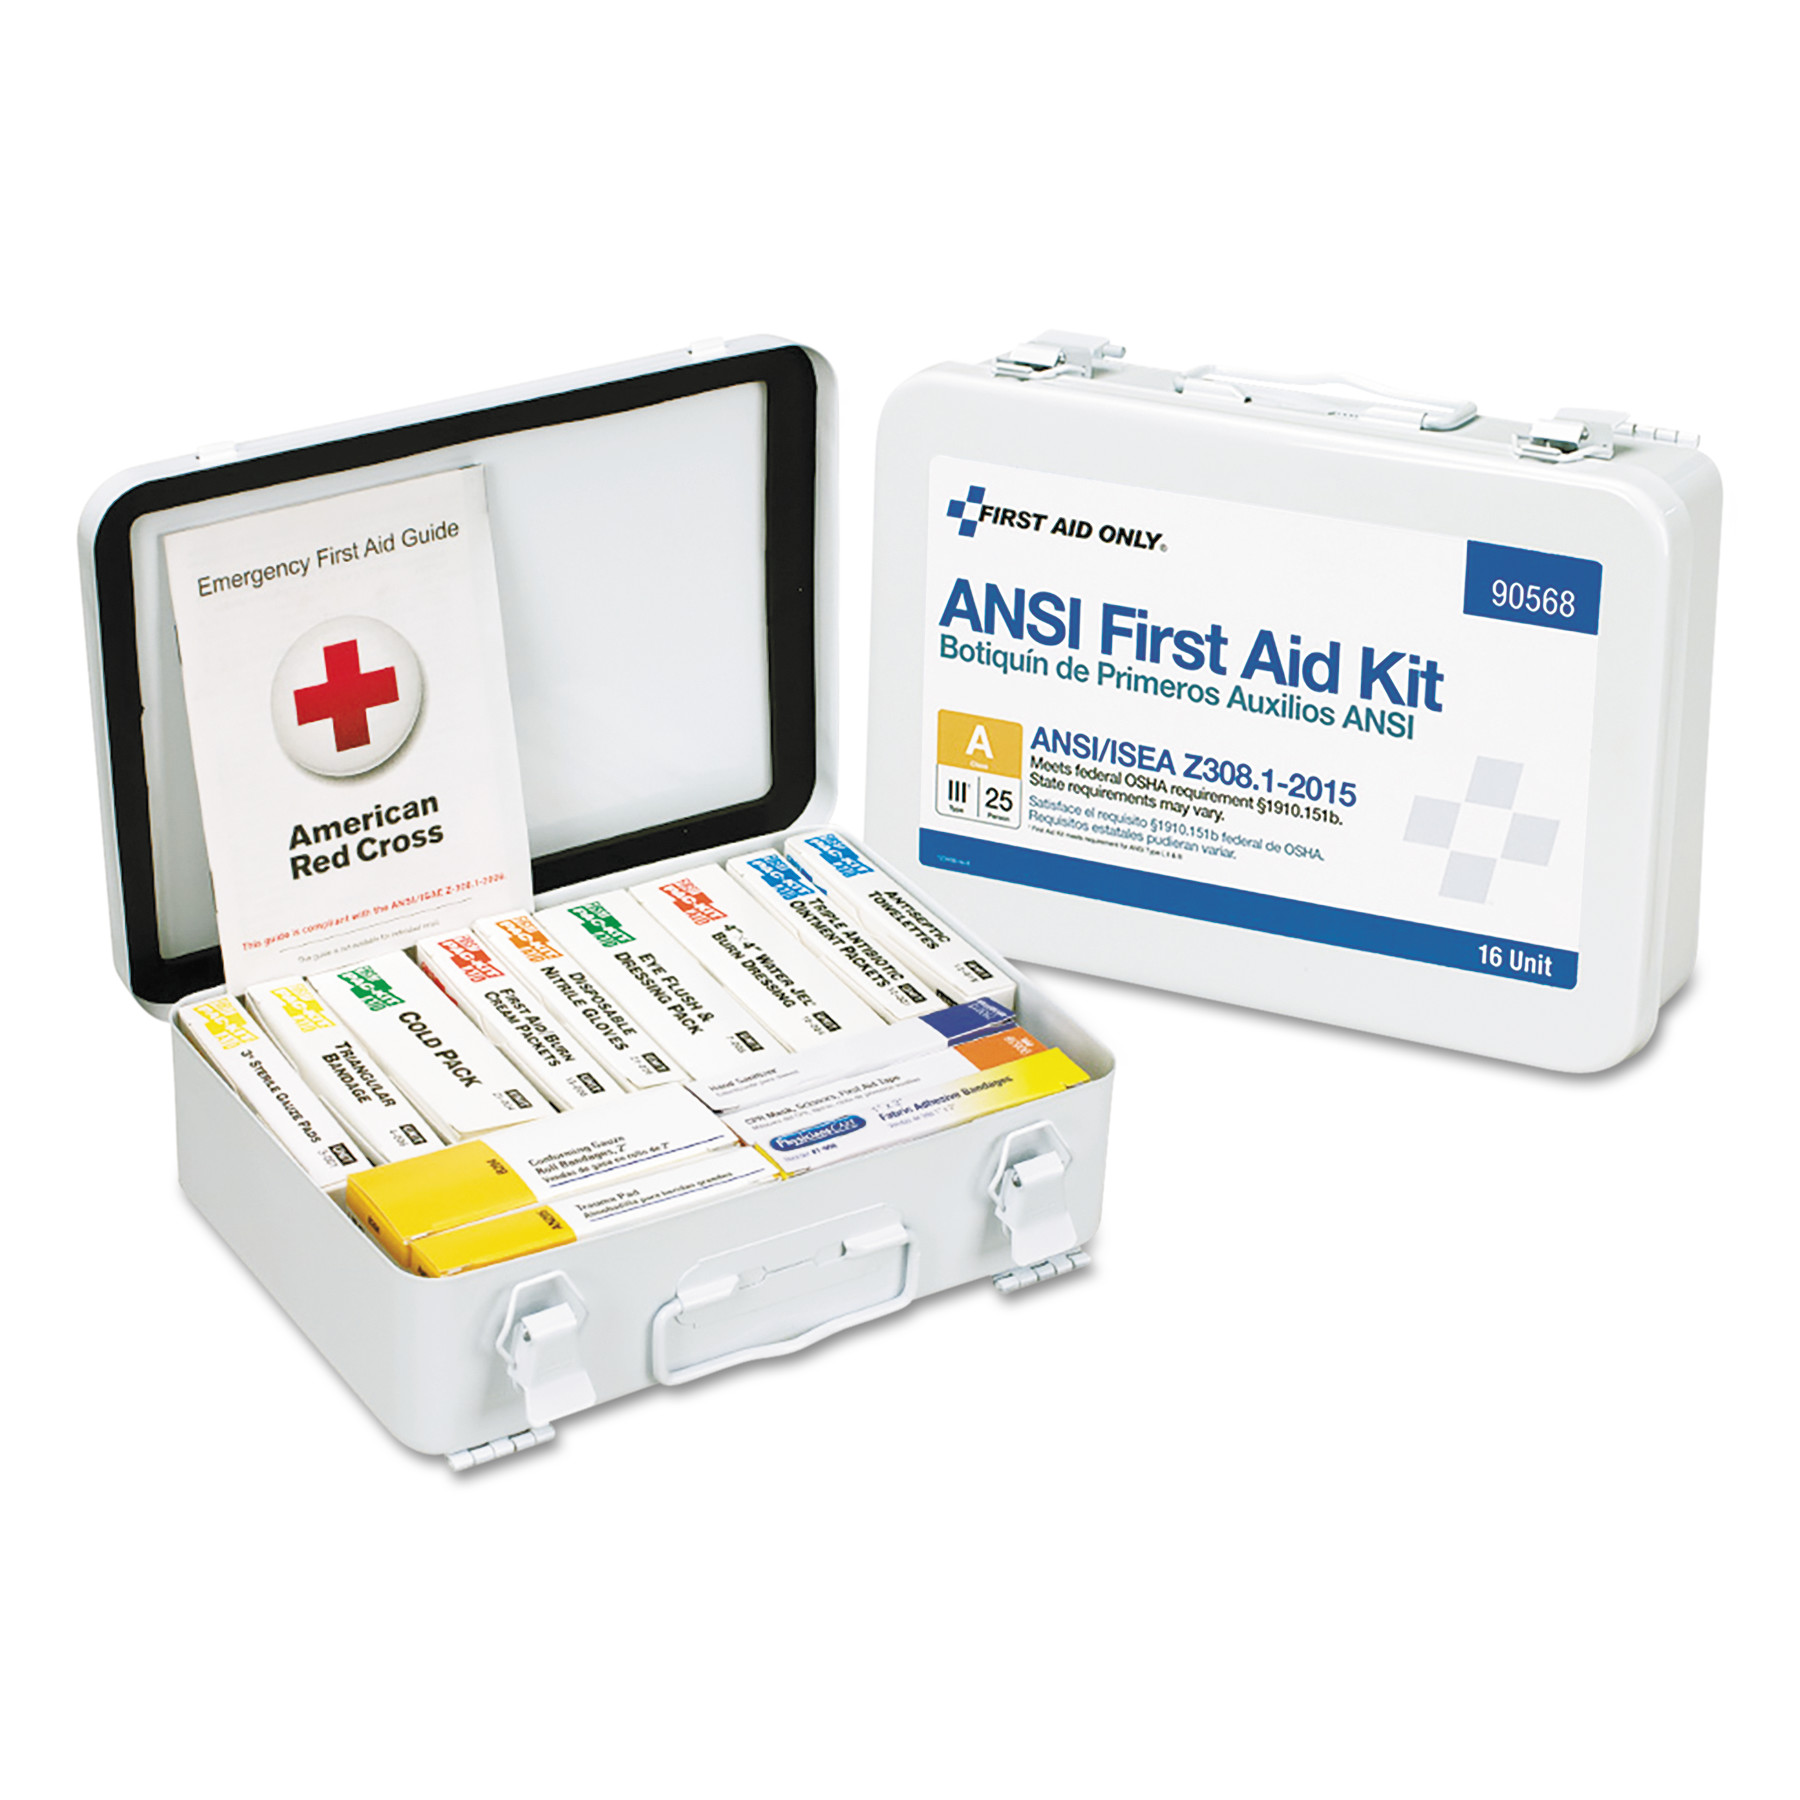 First Aid Only Unitized ANSI Compliant Class A Type III First Aid Kit for 25 People, 16 Units by FIRST AID ONLY, INC.